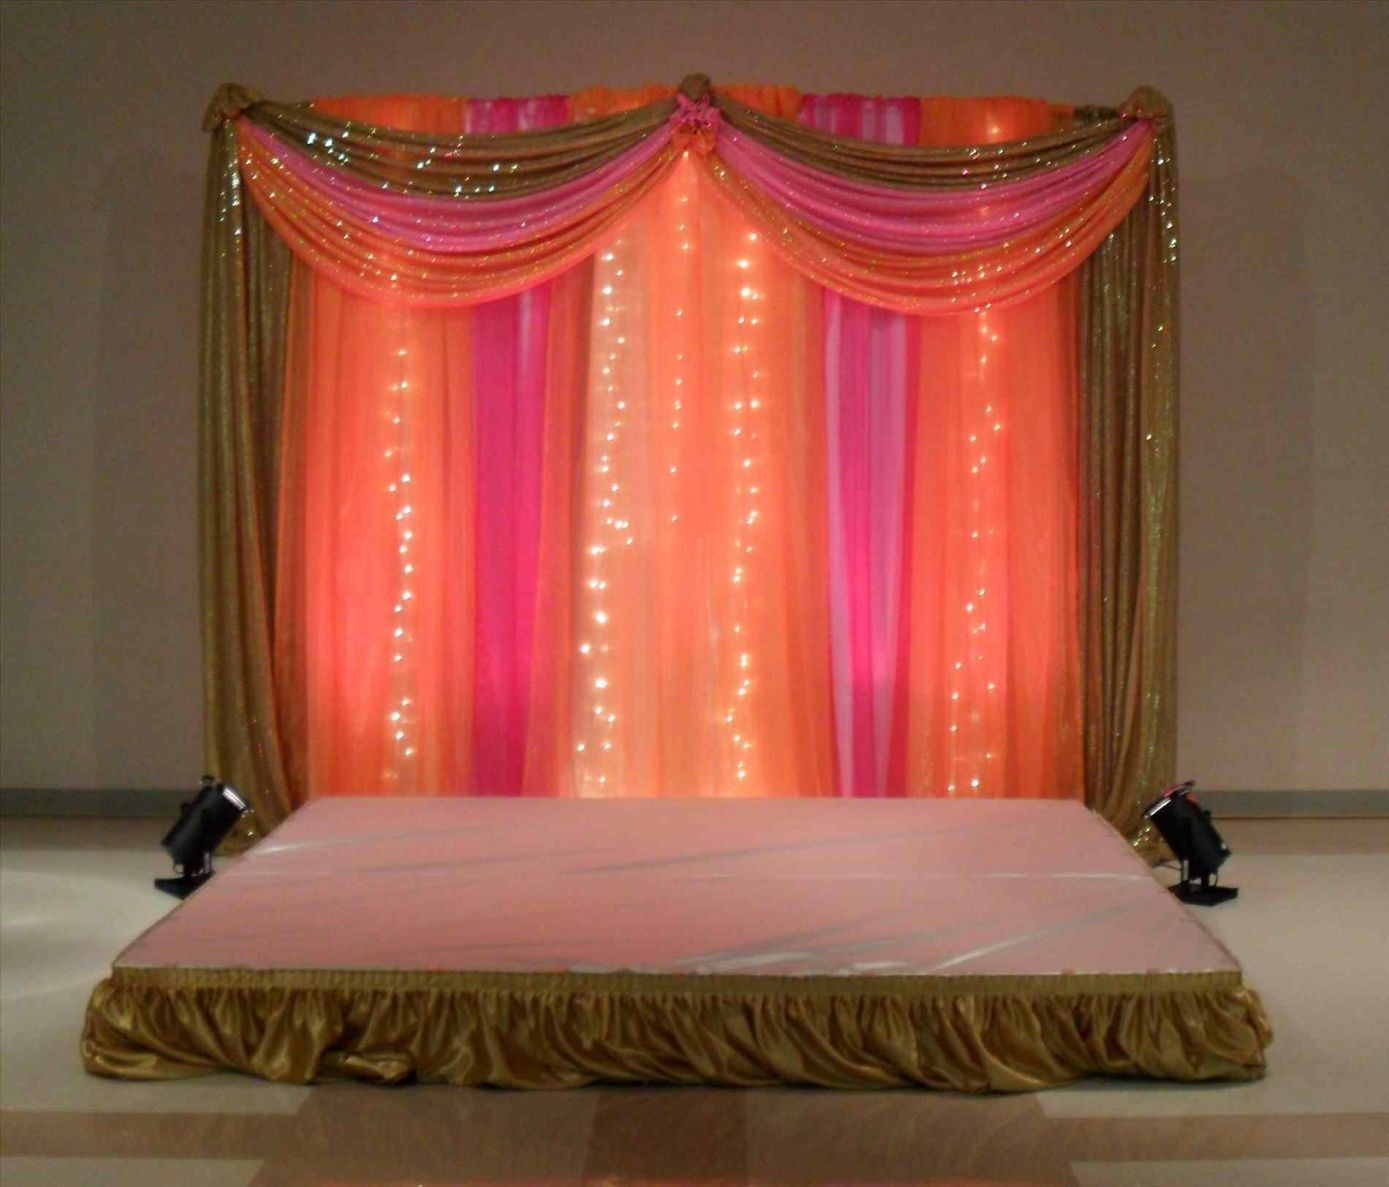 70+ Hindu Bedroom Decor   Best Interior House Paint Check More At Http:/